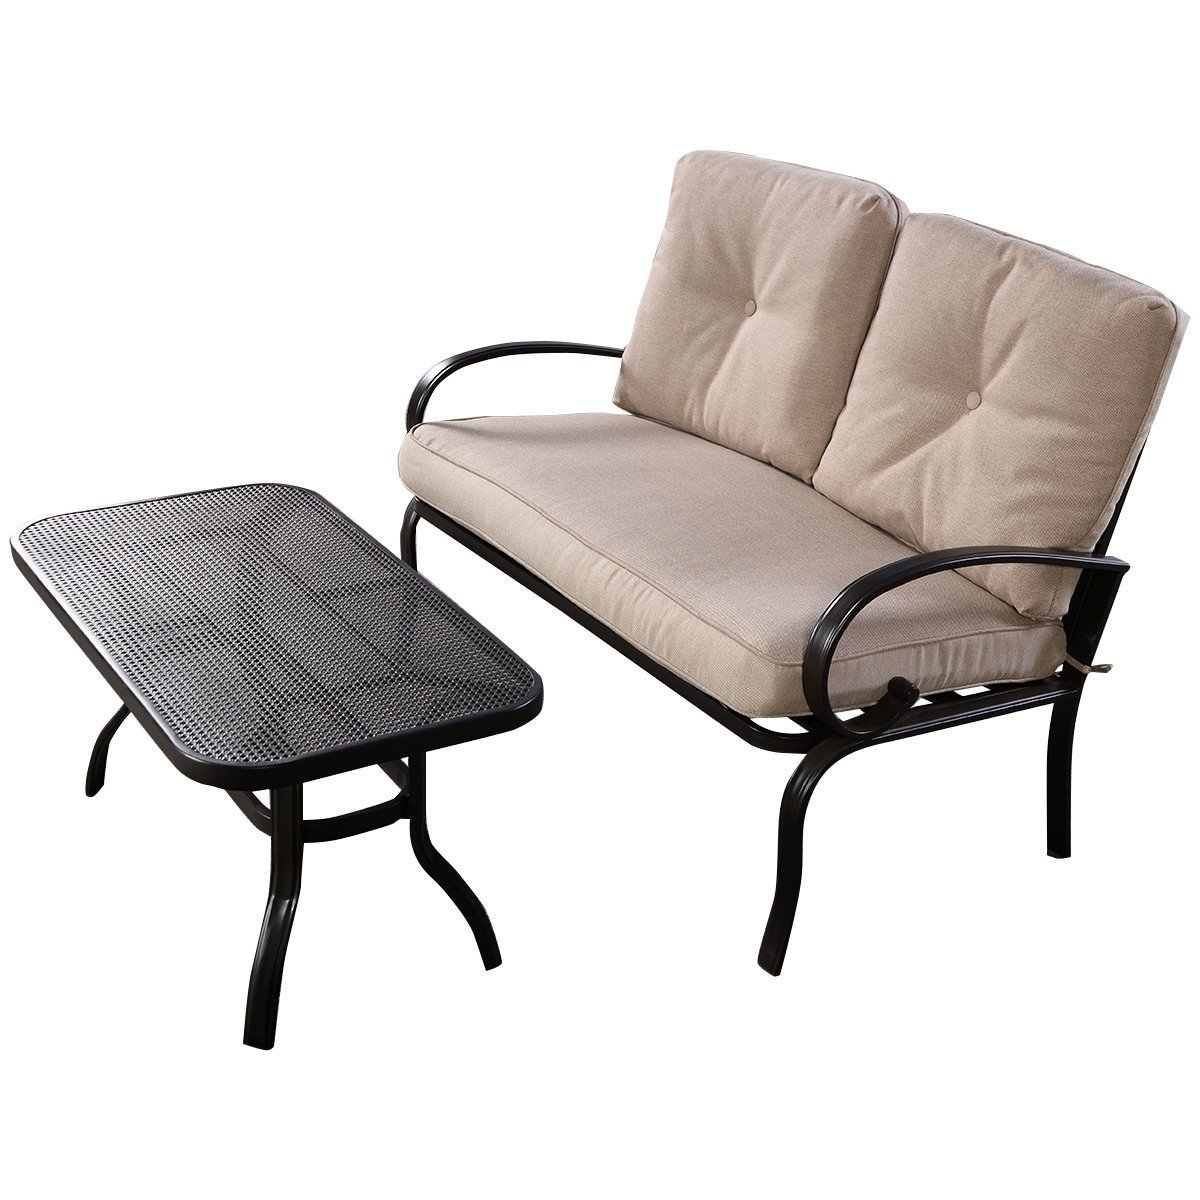 Amazon.com : Giantex 2 Pcs Patio Outdoor LoveSeat Coffee Table Set Furniture  Bench With Cushion : Patio, Lawn U0026 Garden